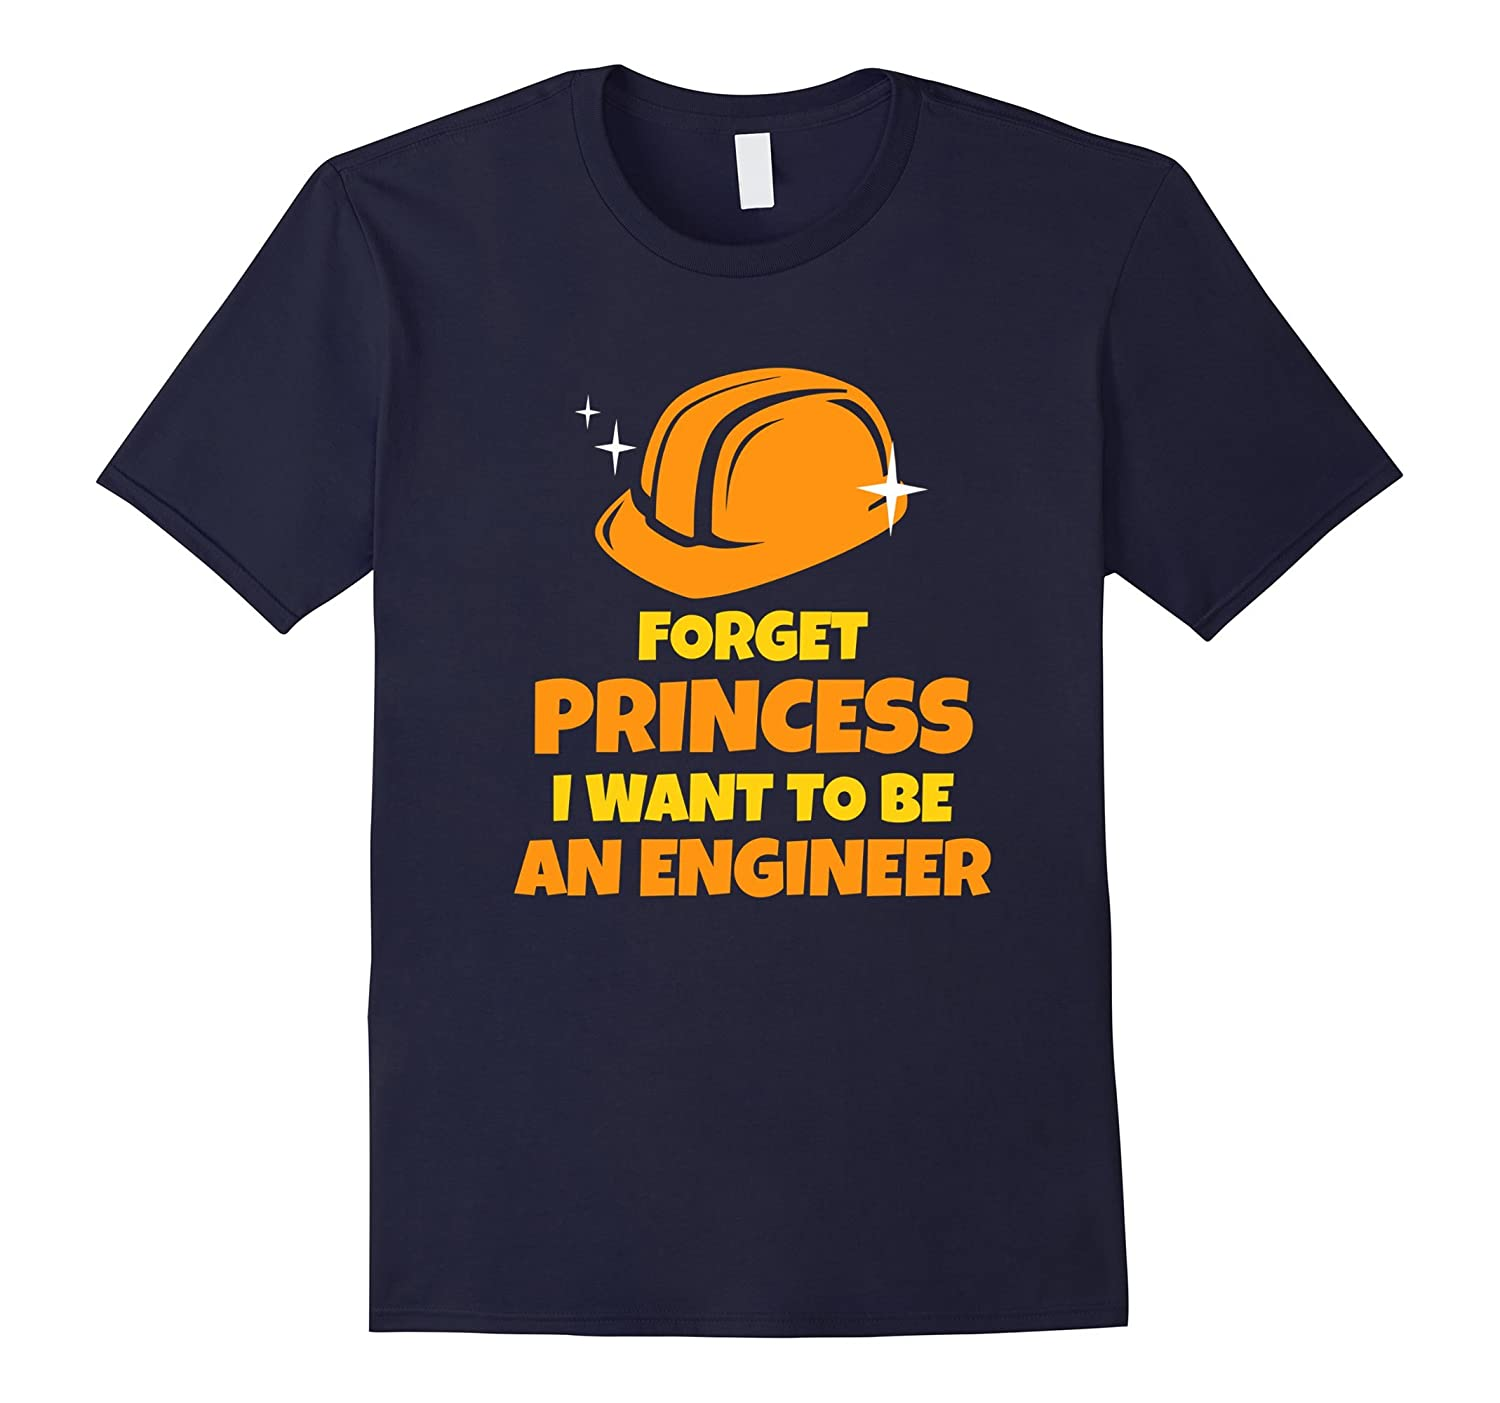 Funny forget princess i want to be an engineer t shirt for I need an engineer